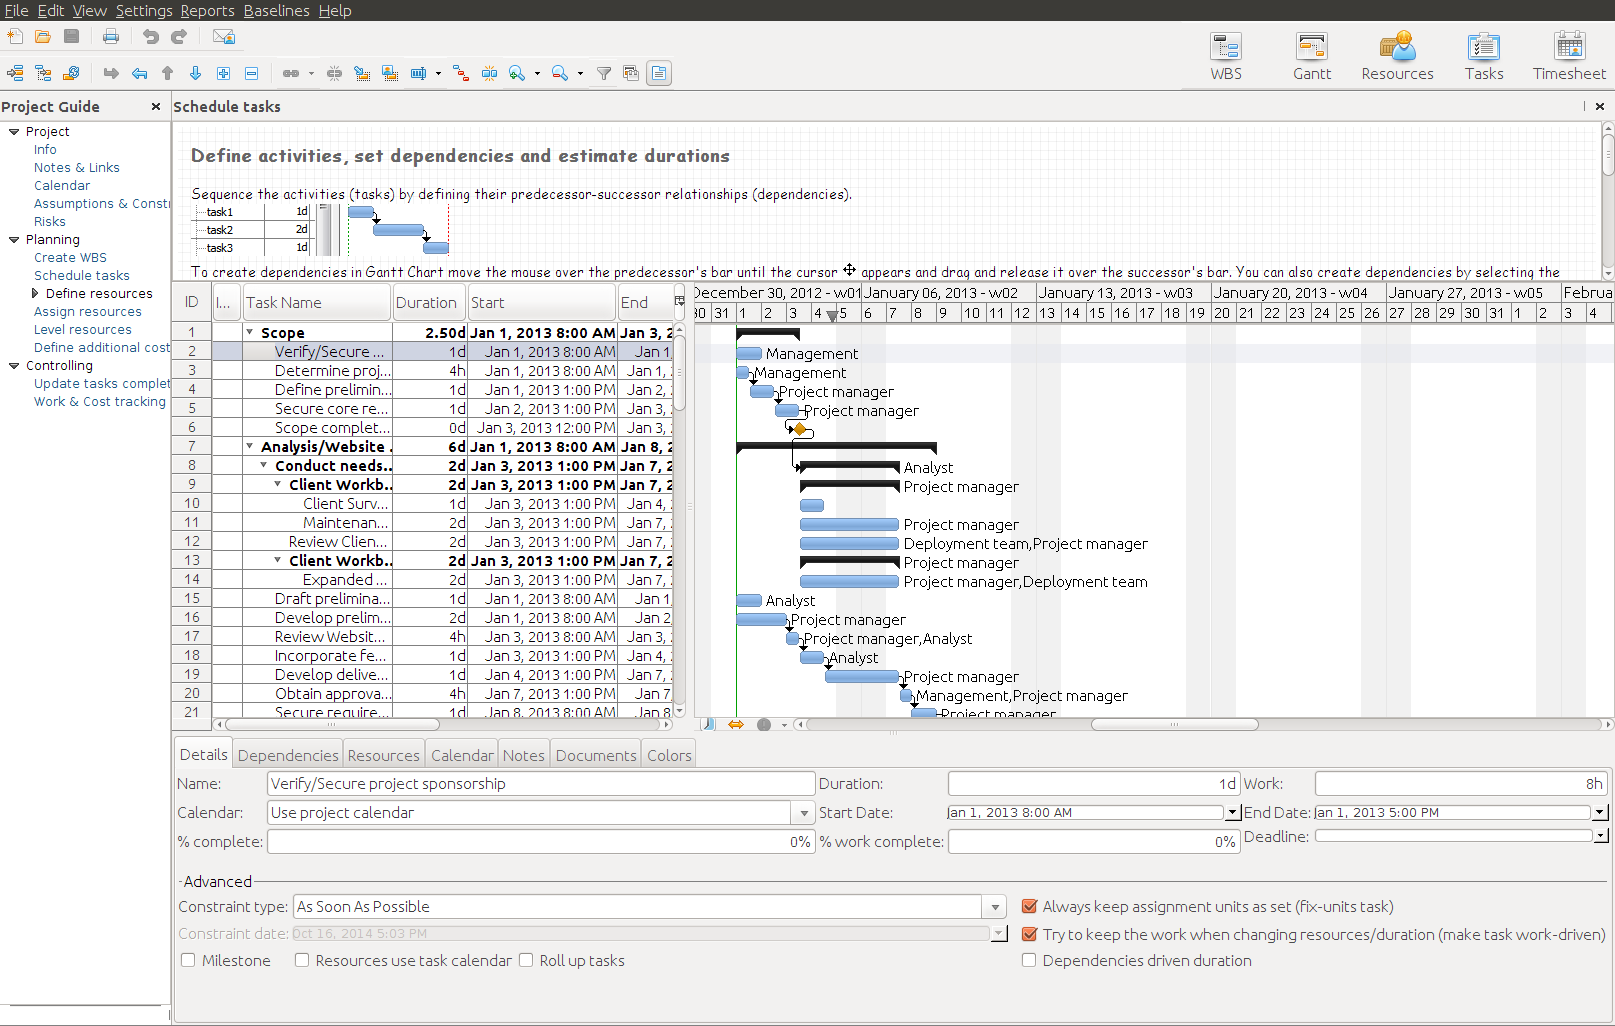 RationalPlan Single Project for Linux 5.0.7699